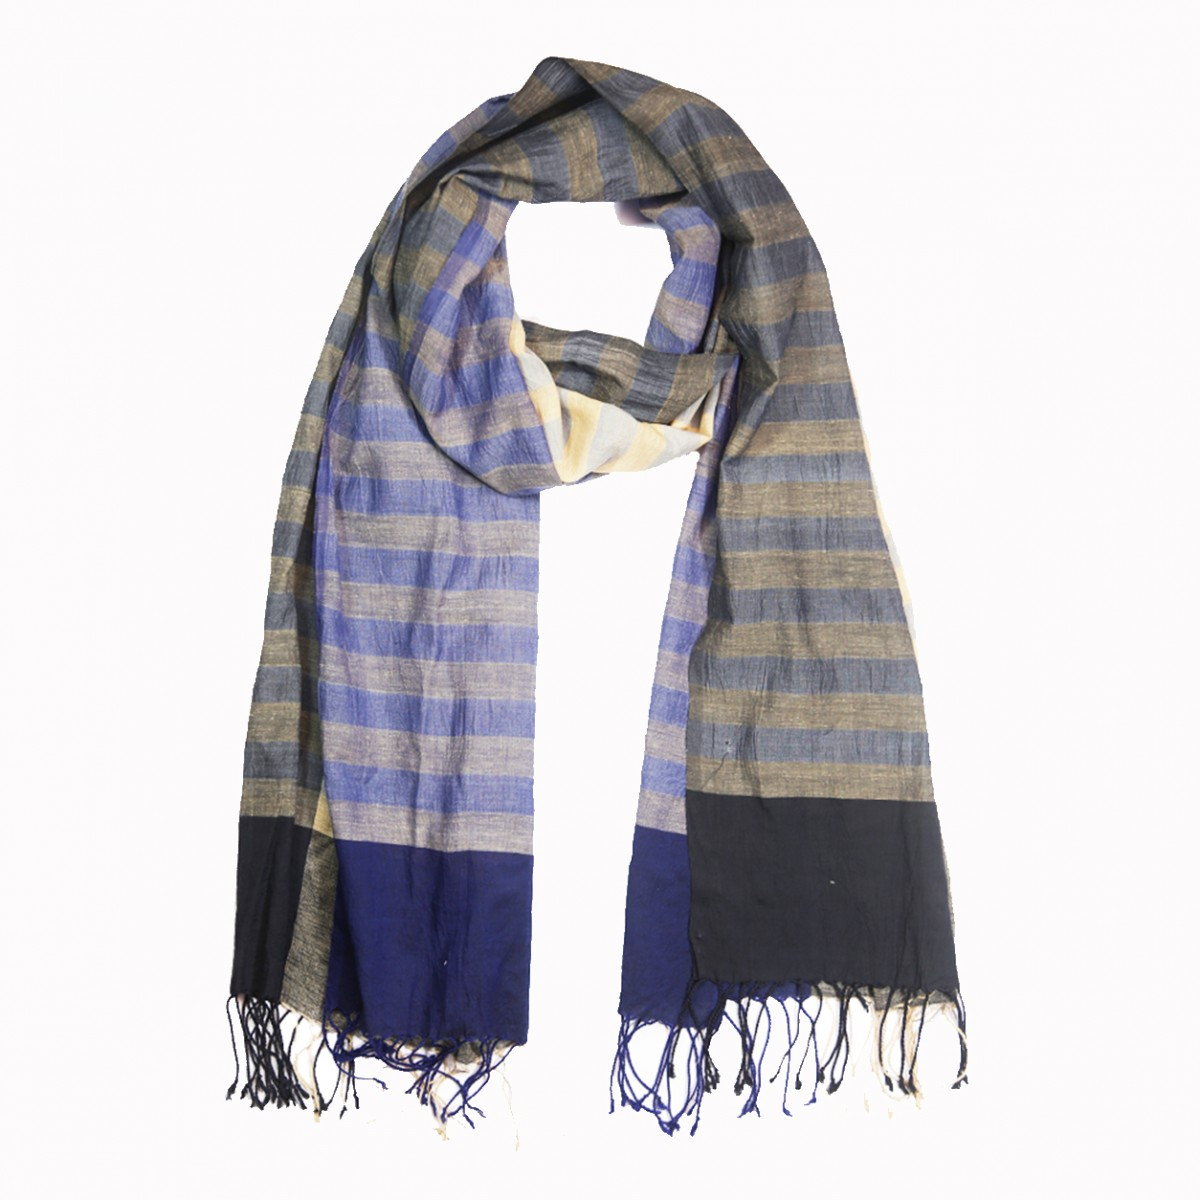 Handloom woven beige stripes cotton scarf